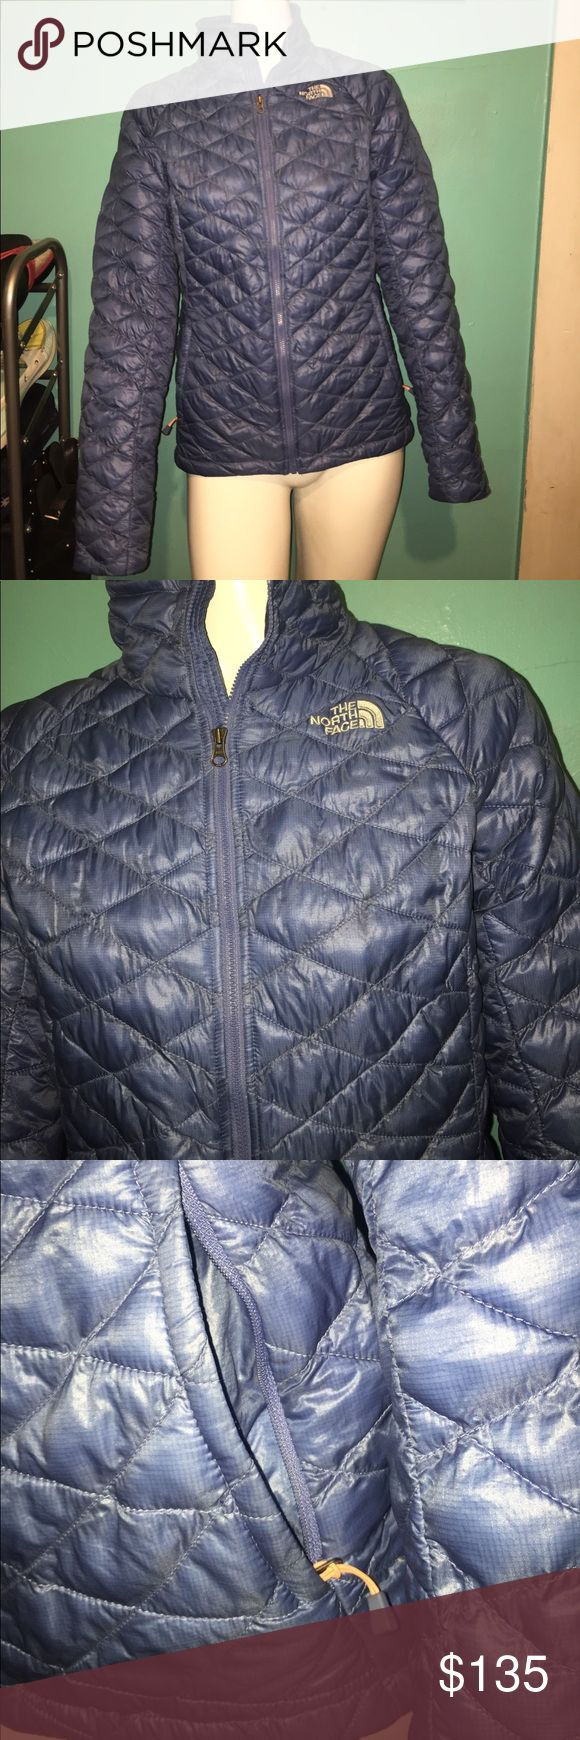 North Face thermoball jacket Perfect condition! Light weight but super warm! Very pretty blue color. North Face Jackets & Coats